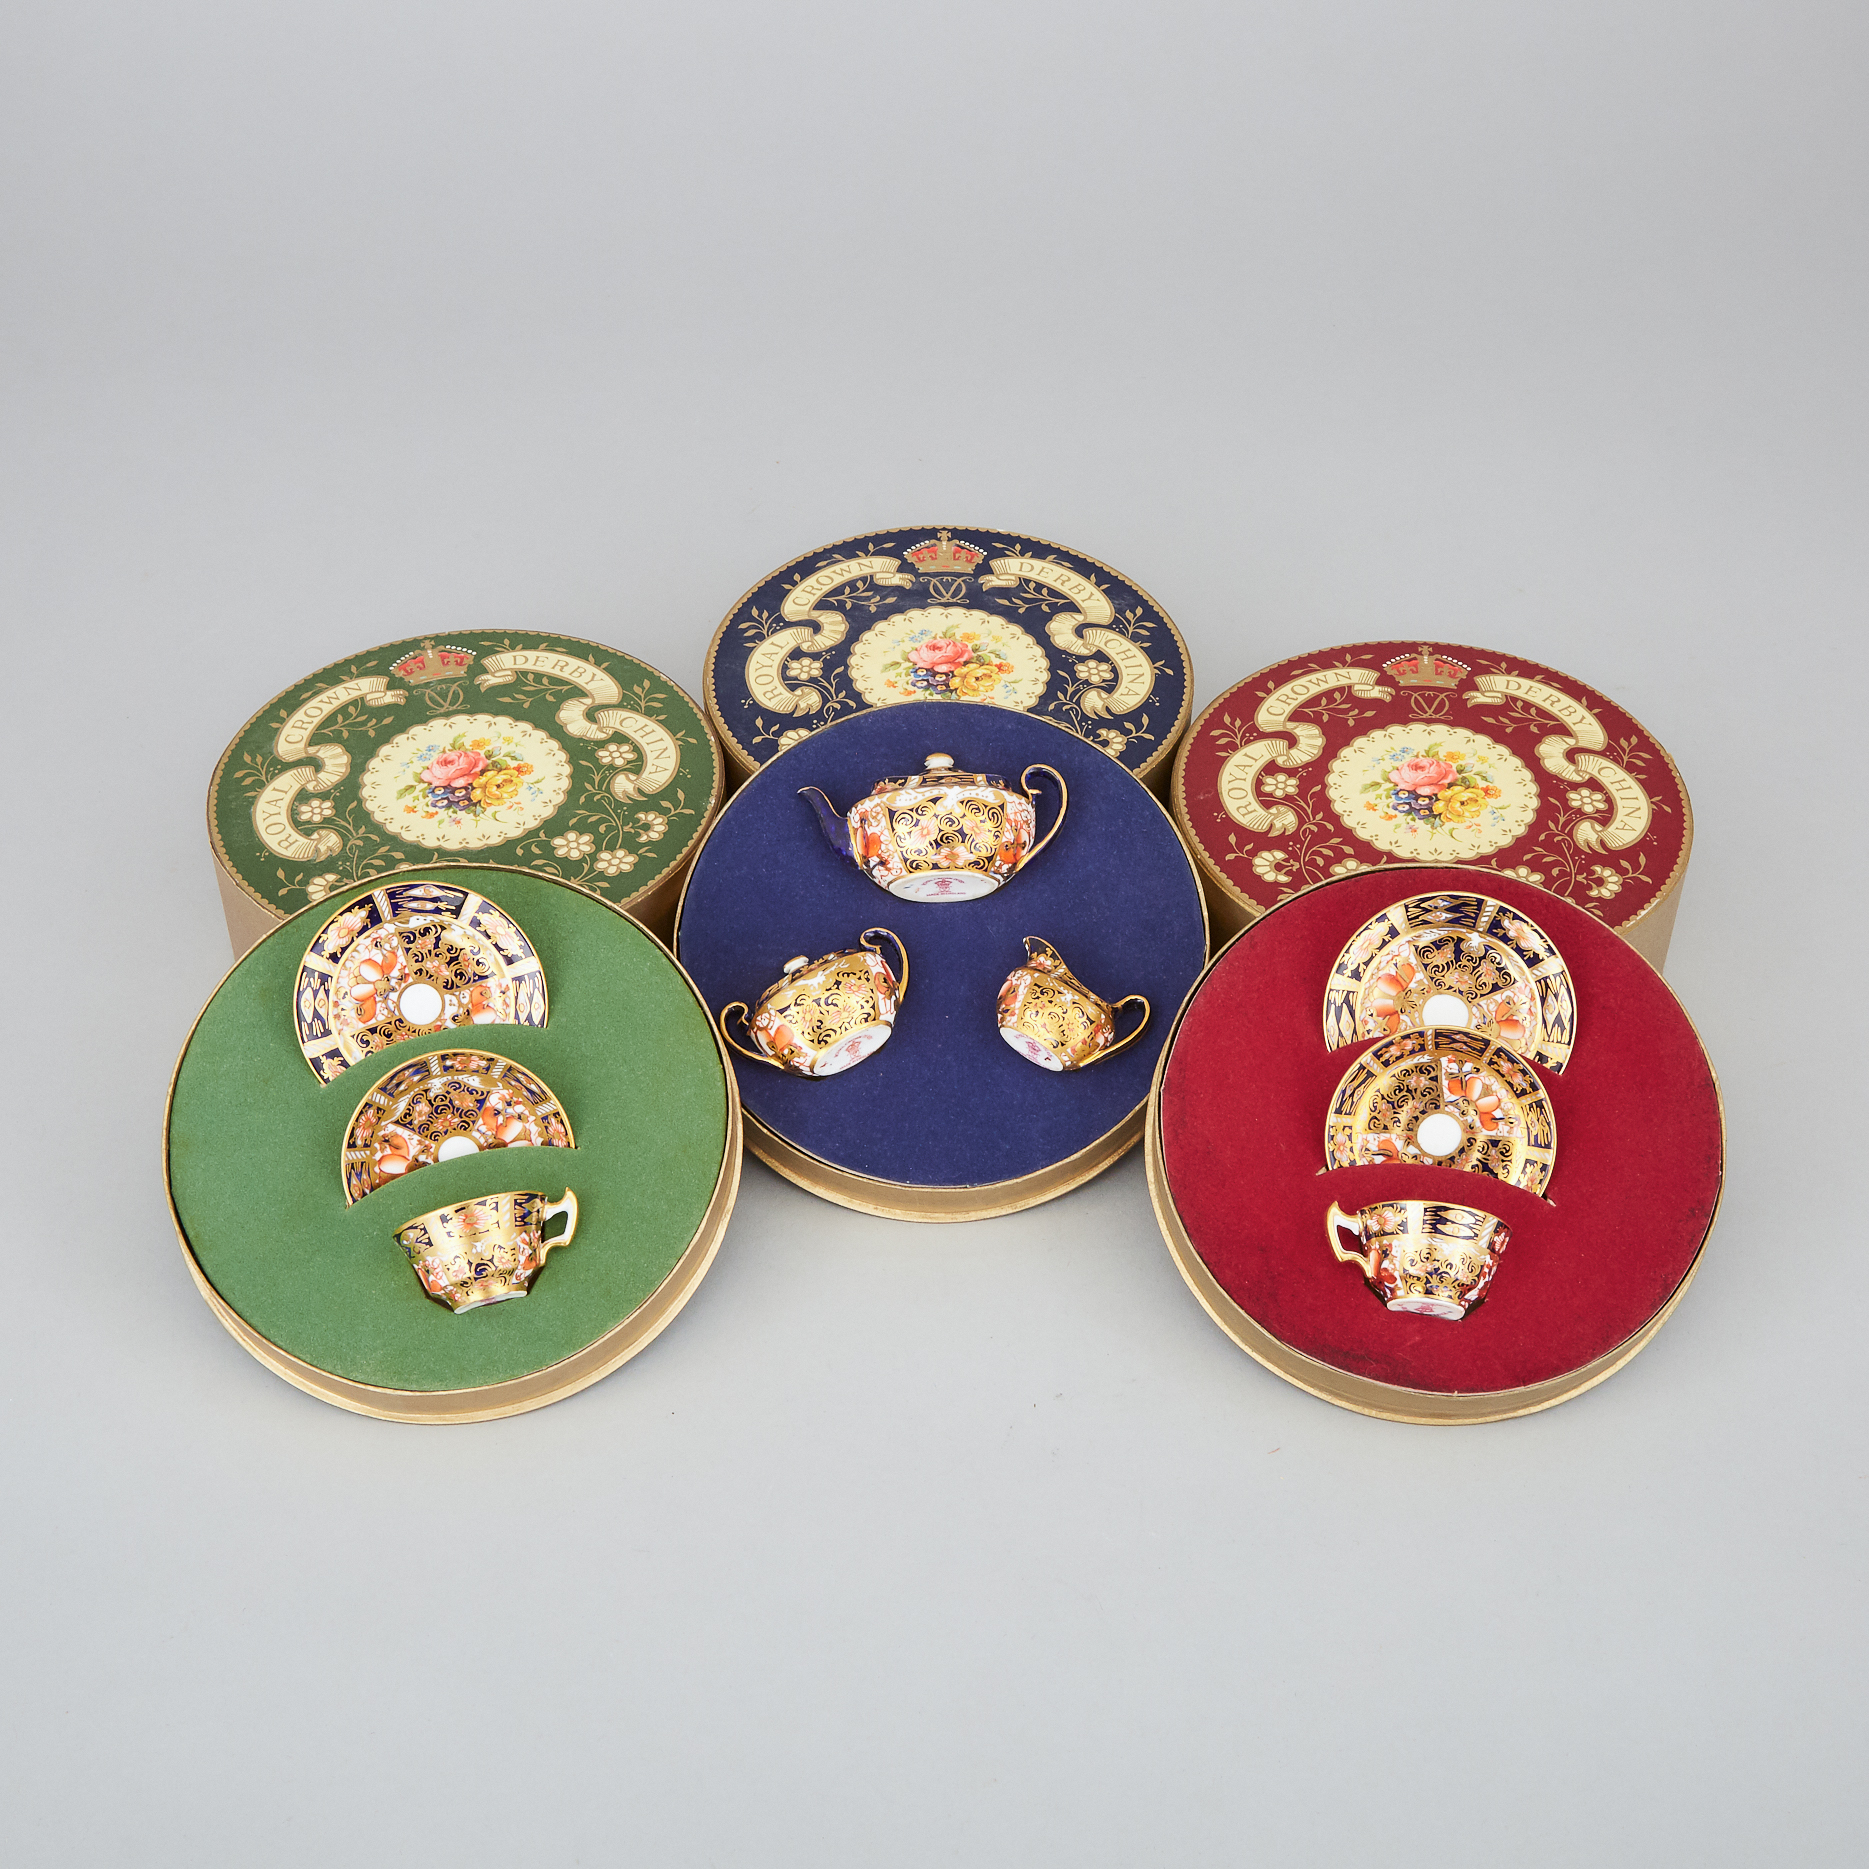 Royal Crown Derby 'Imari' (2451) Pattern Miniature Three-Piece Tea Service, Two Cups and Saucers and Two Plates, 20th century